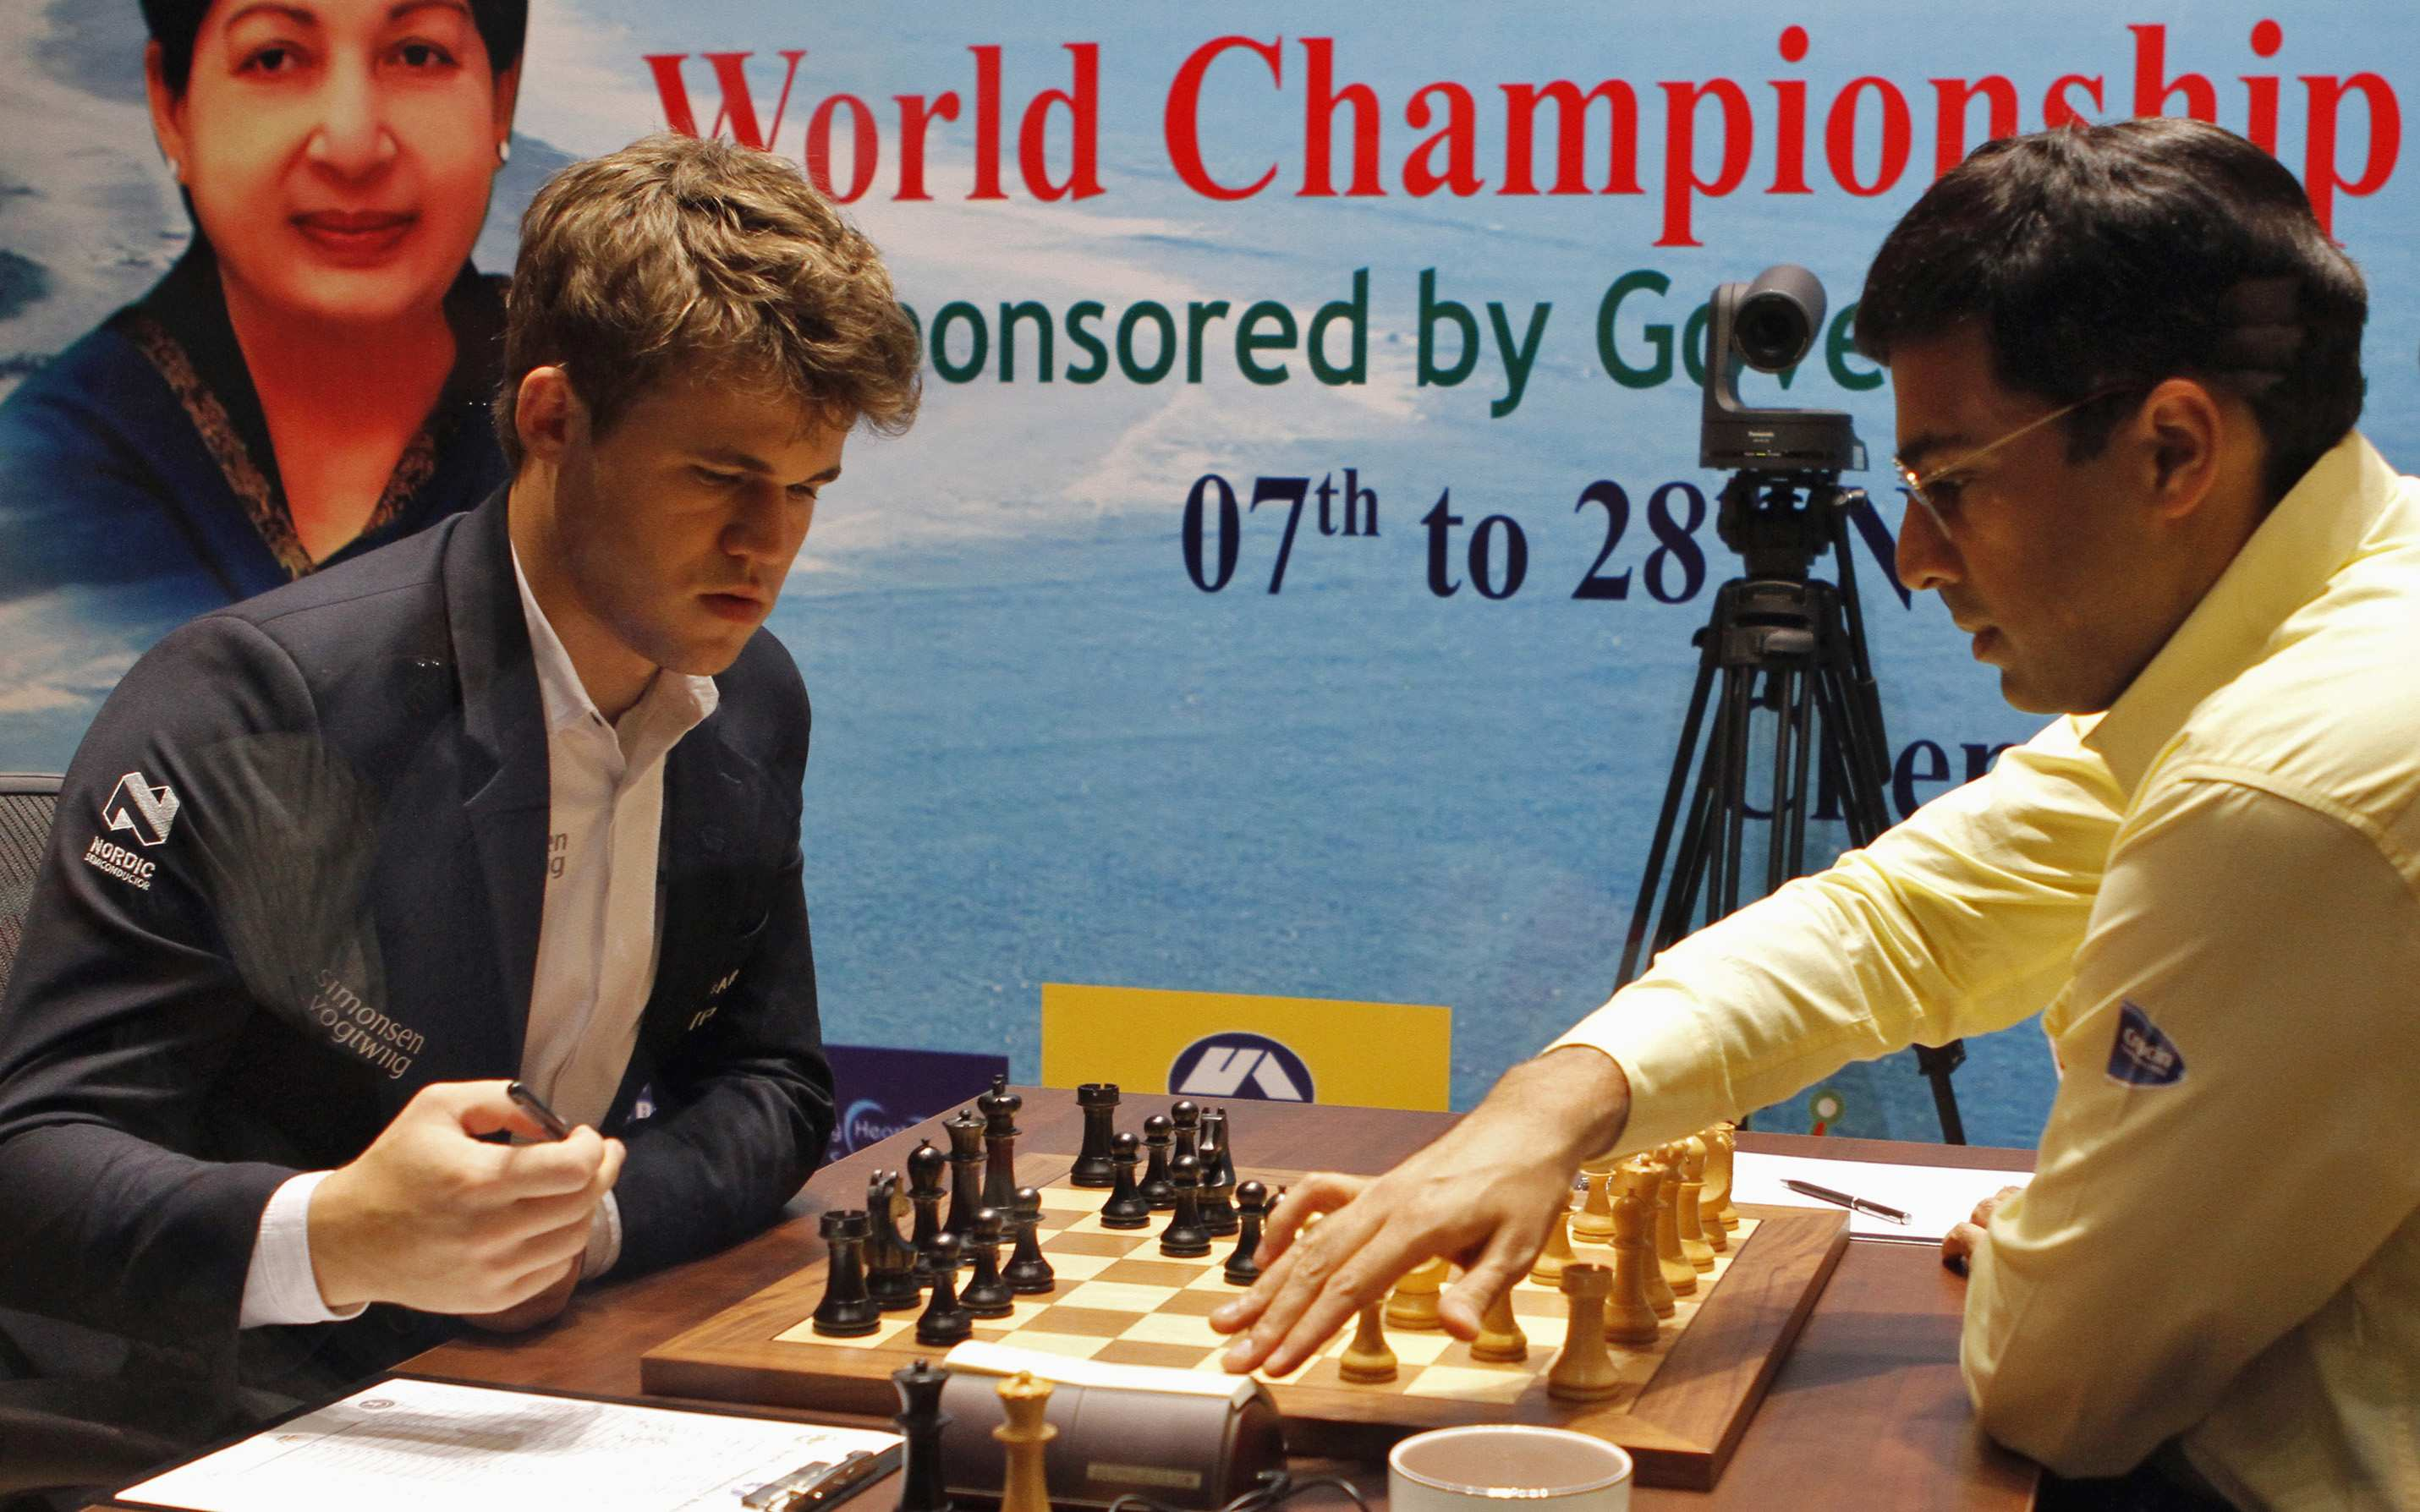 India's Viswanathan Anand (R) plays against Norway's Magnus Carlsen during the FIDE World Chess Championship in the southern Indian city of Chennai November 21, 2013. REUTERS/Babu (INDIA - Tags: SPORT CHESS)